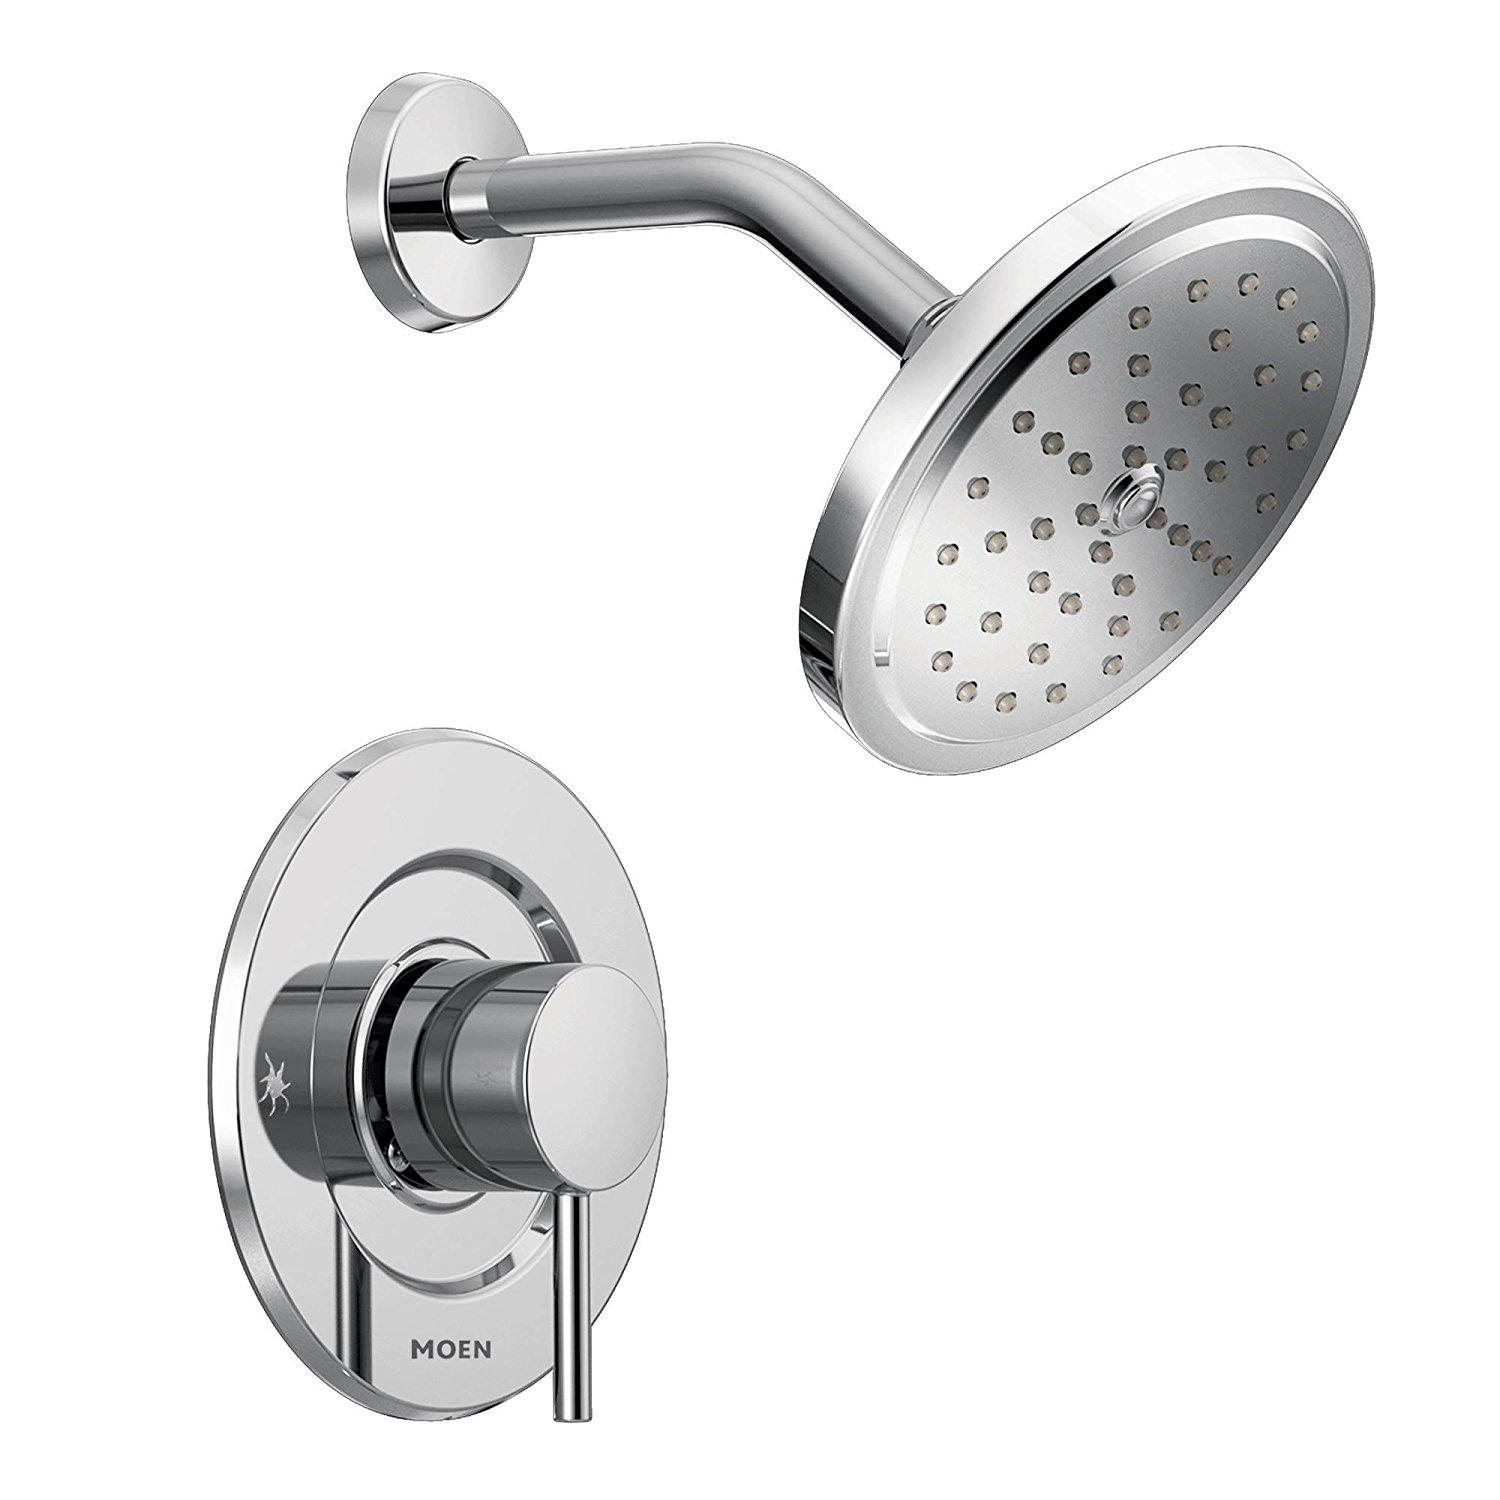 Moen t3292 align shower only body set without moen 39 s moentrol shower valve chrome Amazon bathroom faucets moen